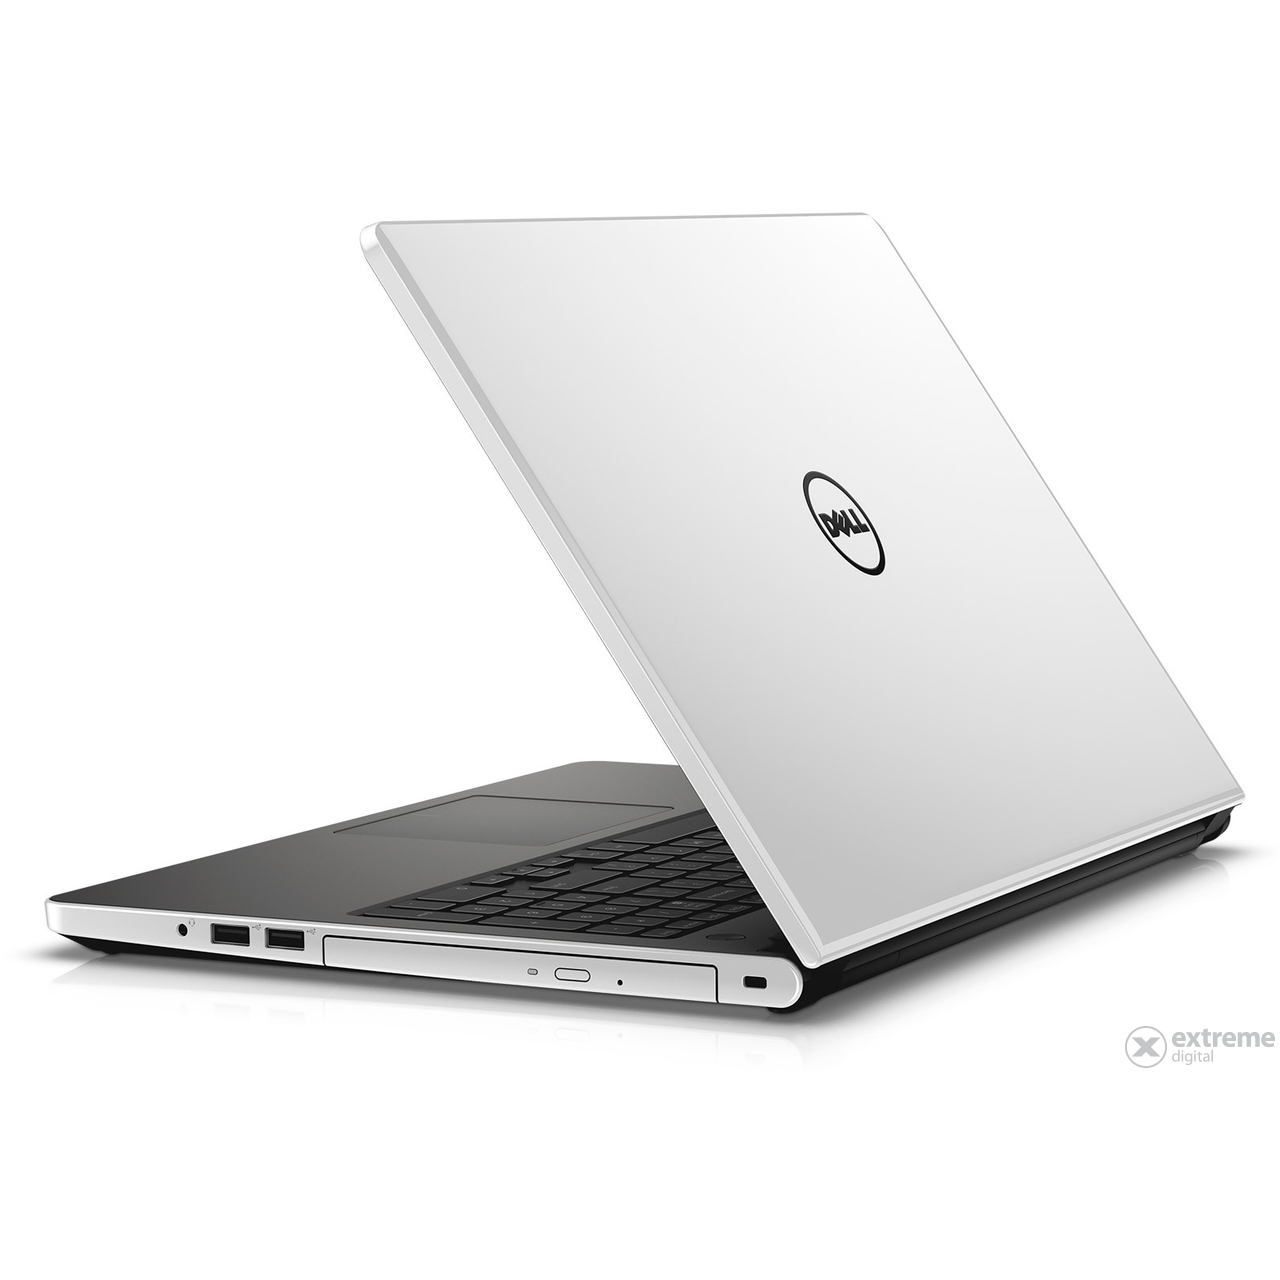 dell-inspiron-5558-181298-notebook-fenyes-feher-windows-8-1-operacios-rendszer_89012021.jpg